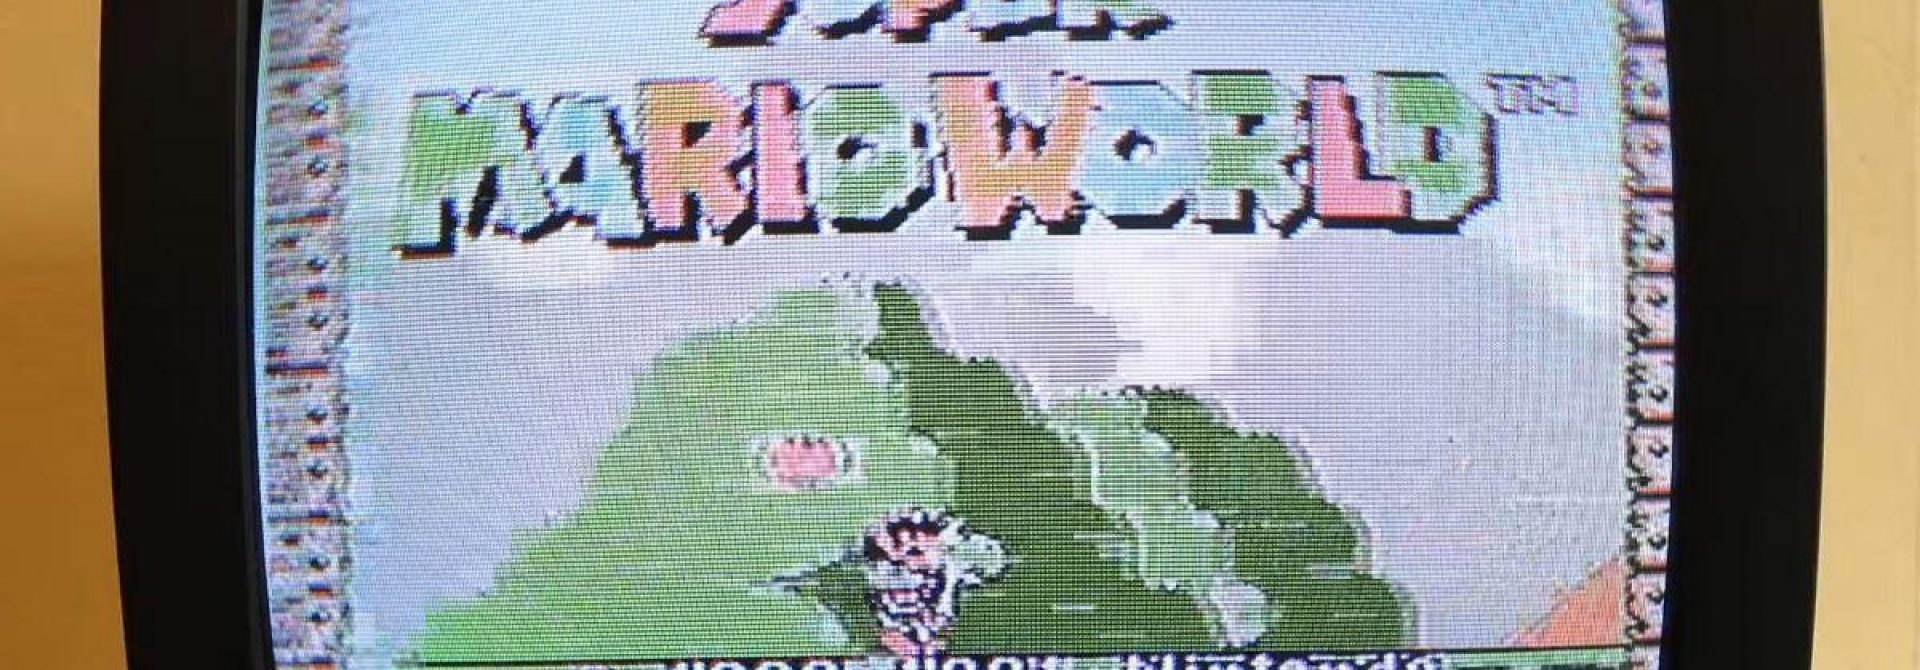 This Is A Super NES Game, Running On An NES